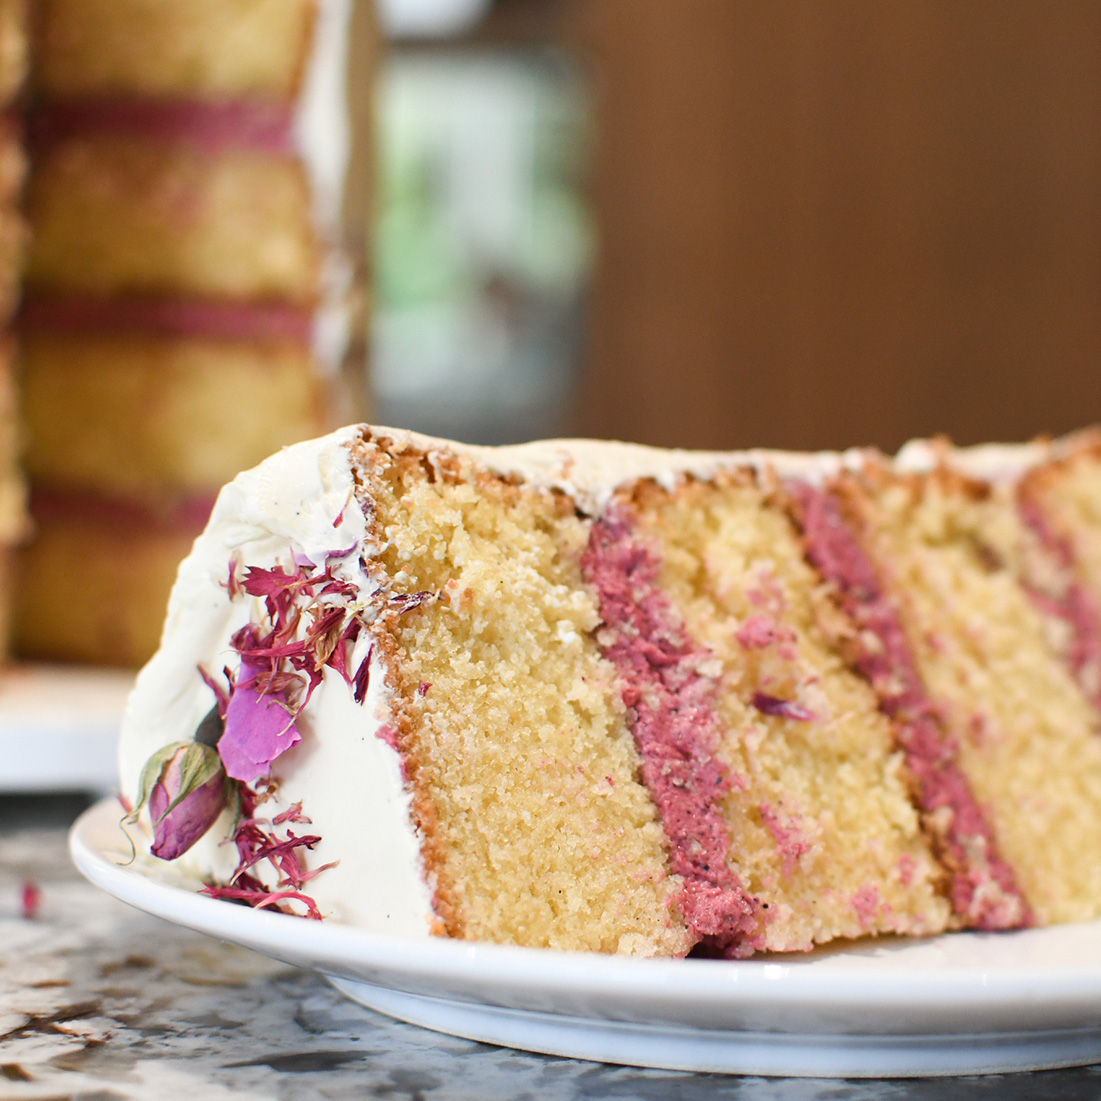 Naturally Coloured Purple Blackcurrant Buttercream in Cake